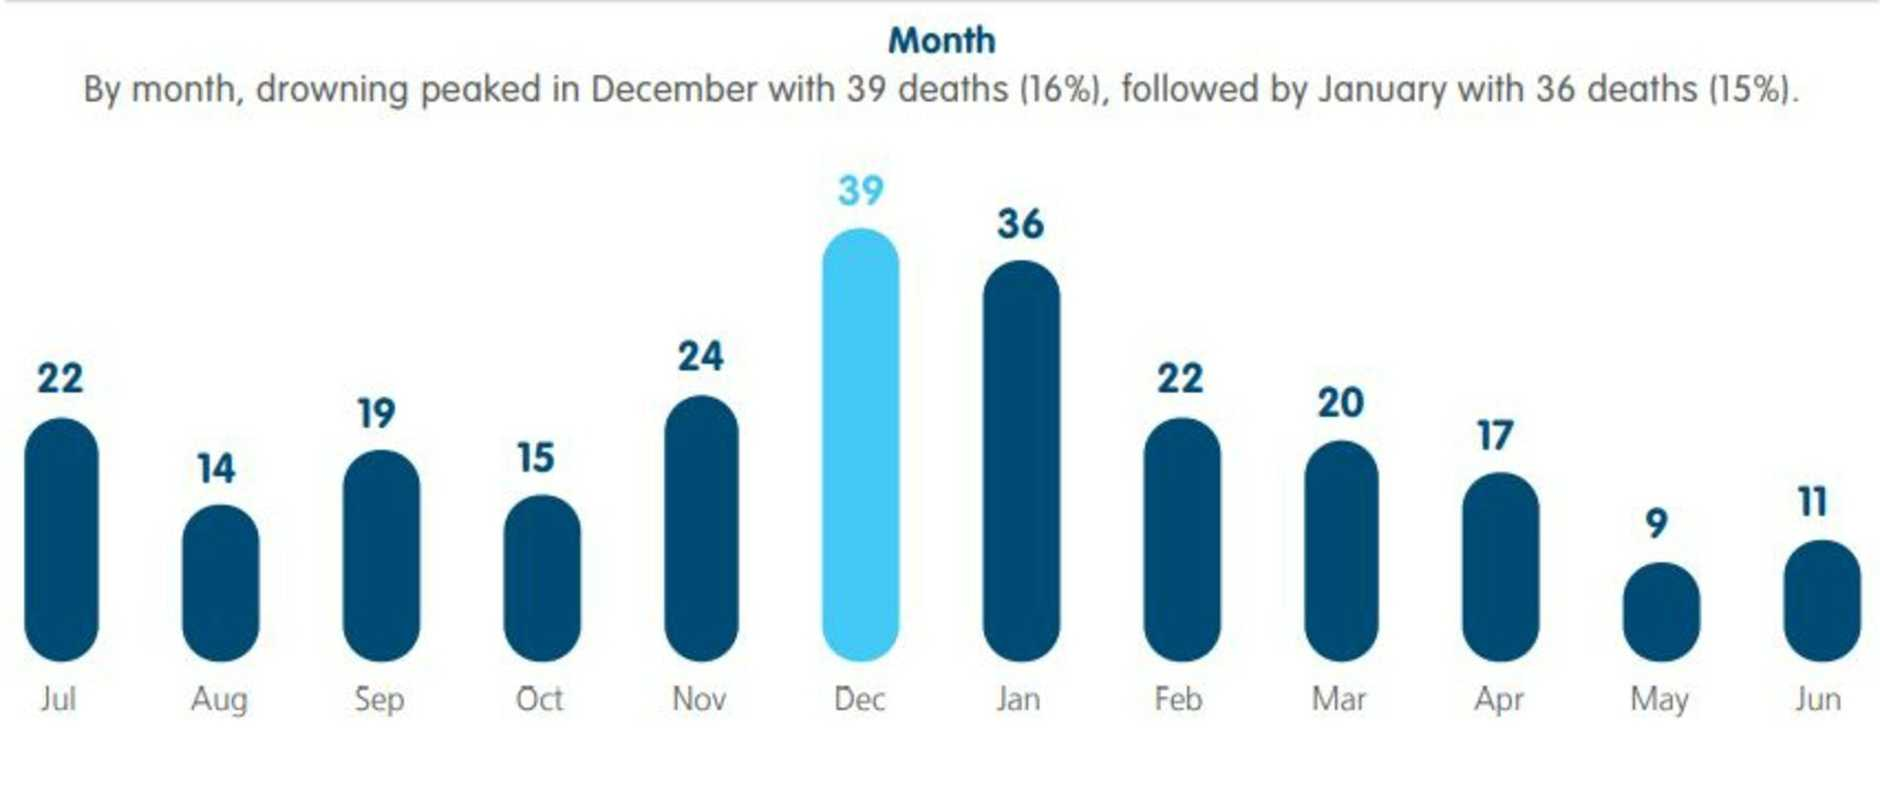 Drownings by month for 2019/20. Picture: Royal Life Saving Society Australia